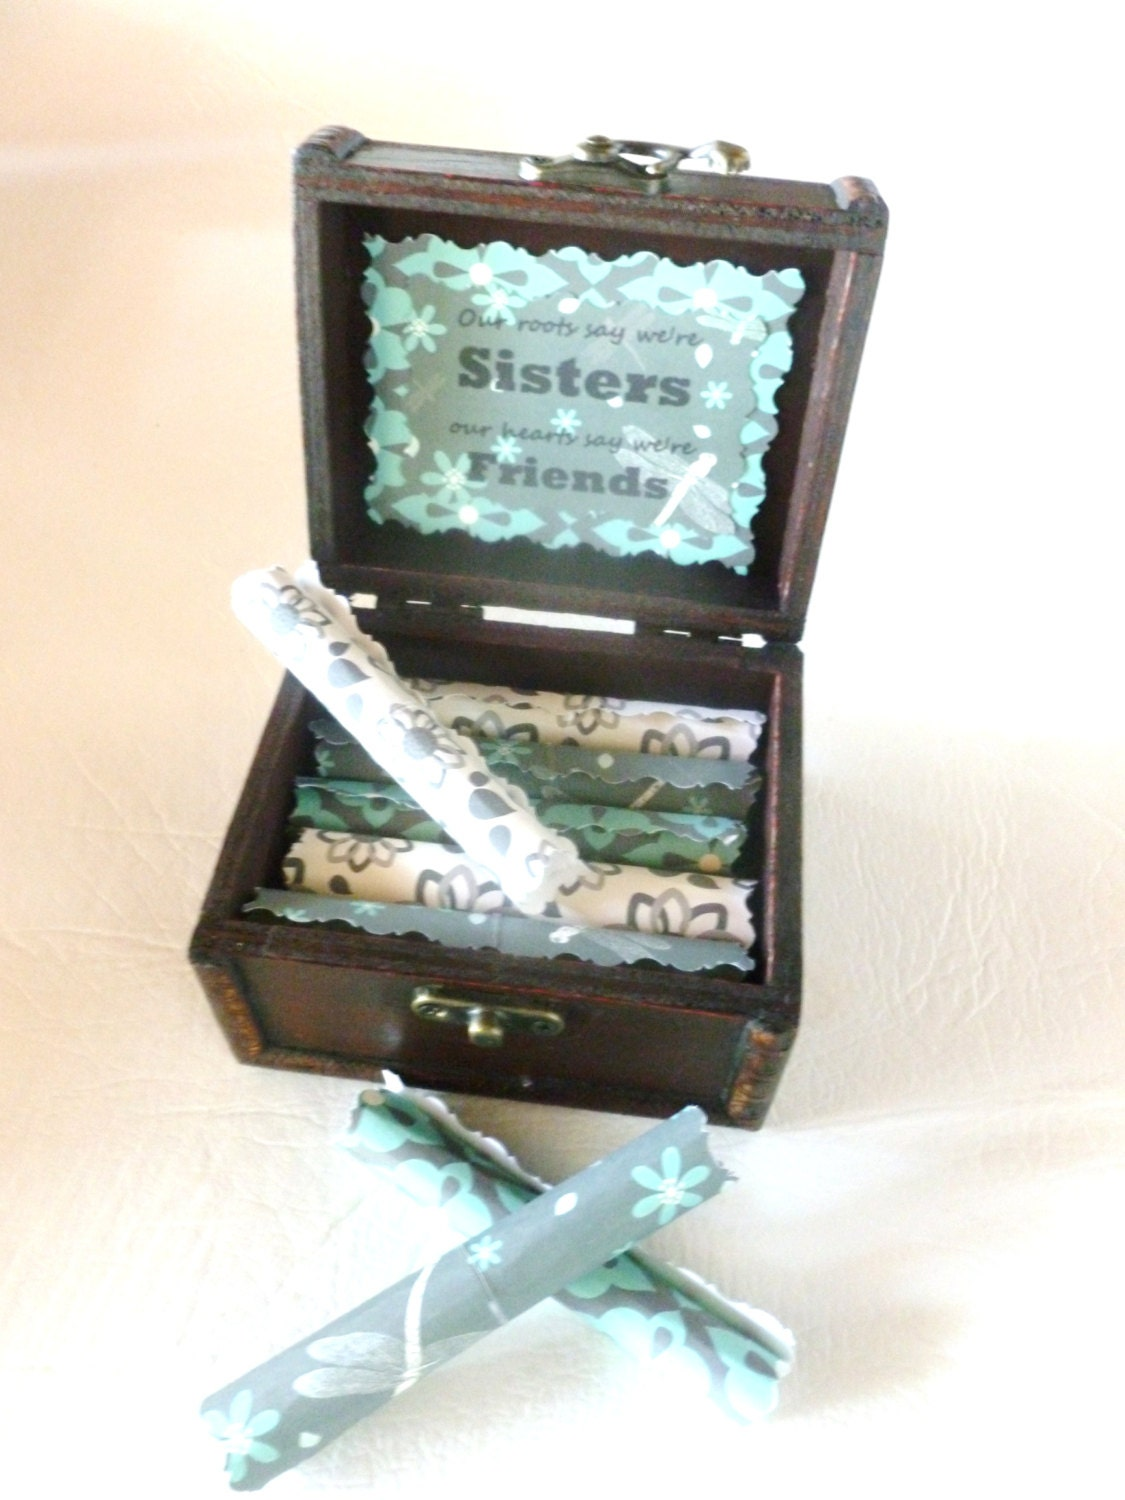 Sister Birthday Gift Scroll Box Quotes In Wood Chest Christmas Idea Twin